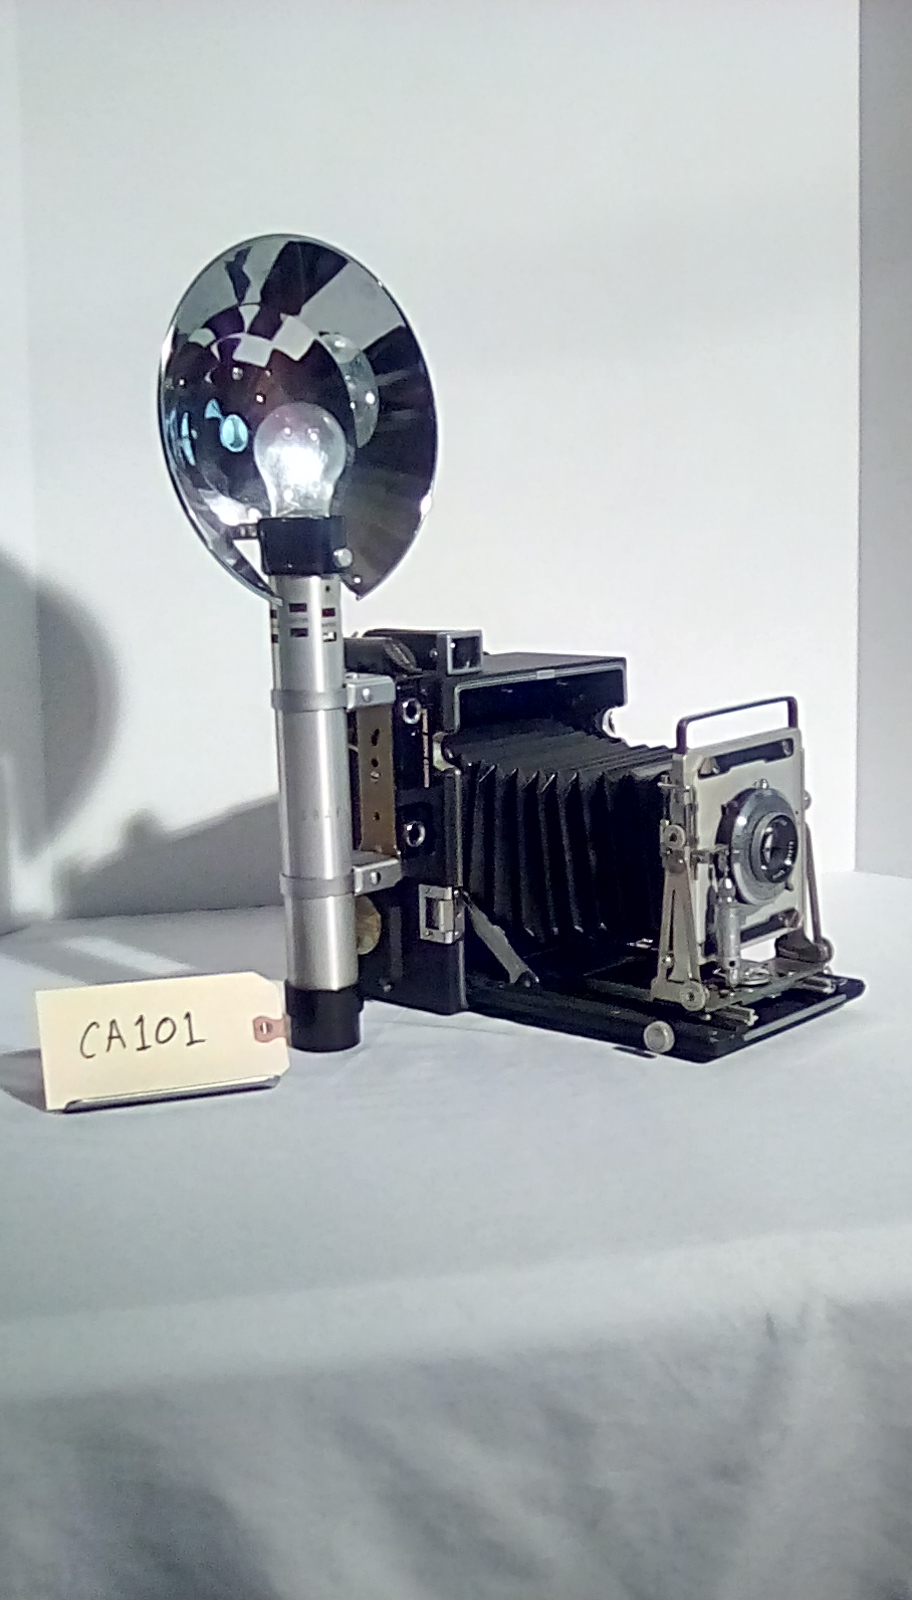 CA101 Reporter Camera, Speed Graphic, w/electronic flash, accordion fold lens